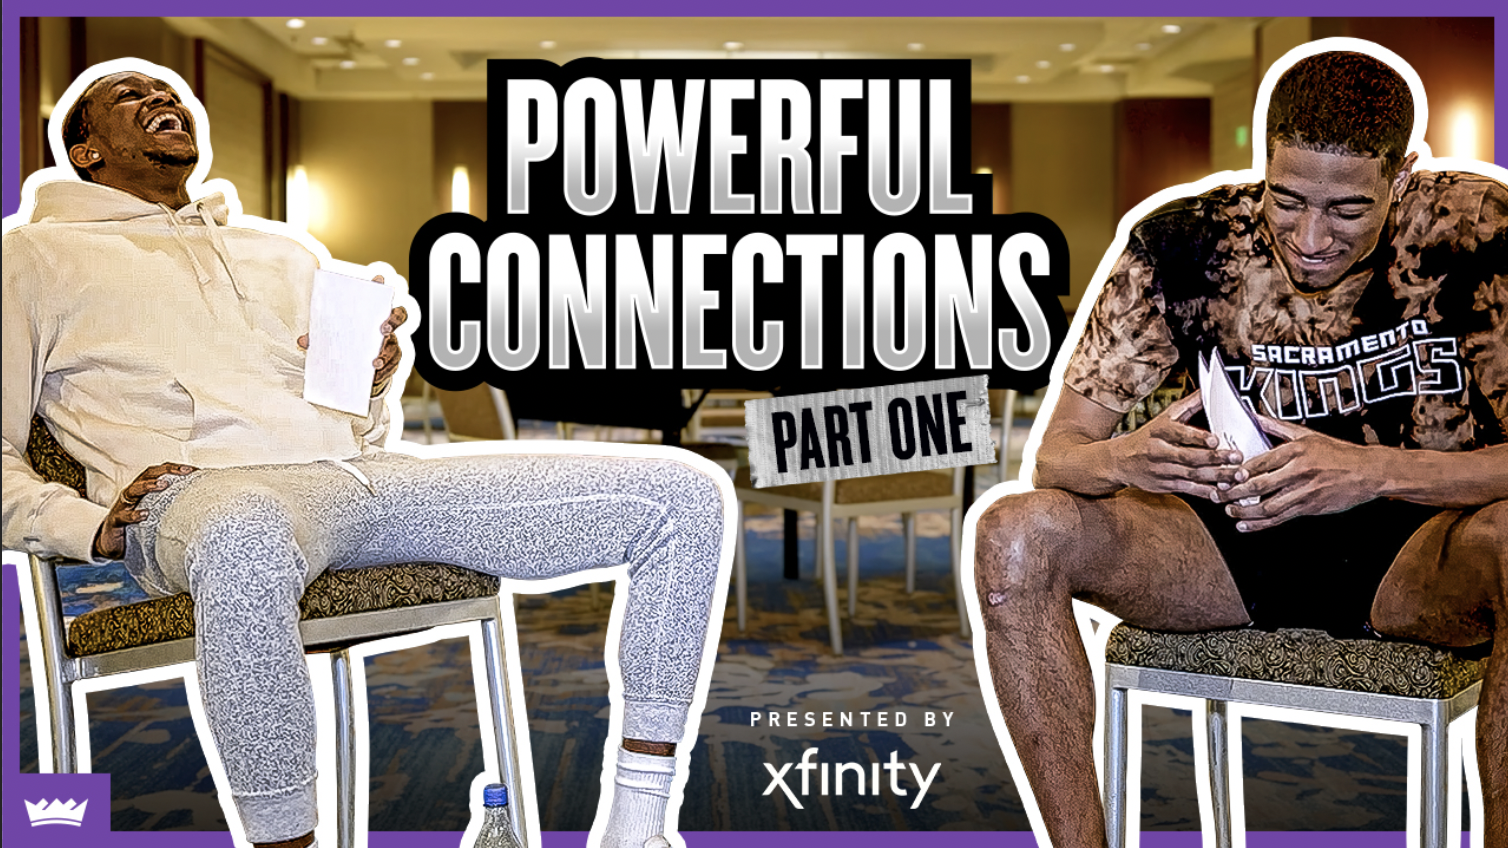 Powerful Connections with De'Aaron Fox and Tyrese Haliburton, Presented by Xfinity | Part 1